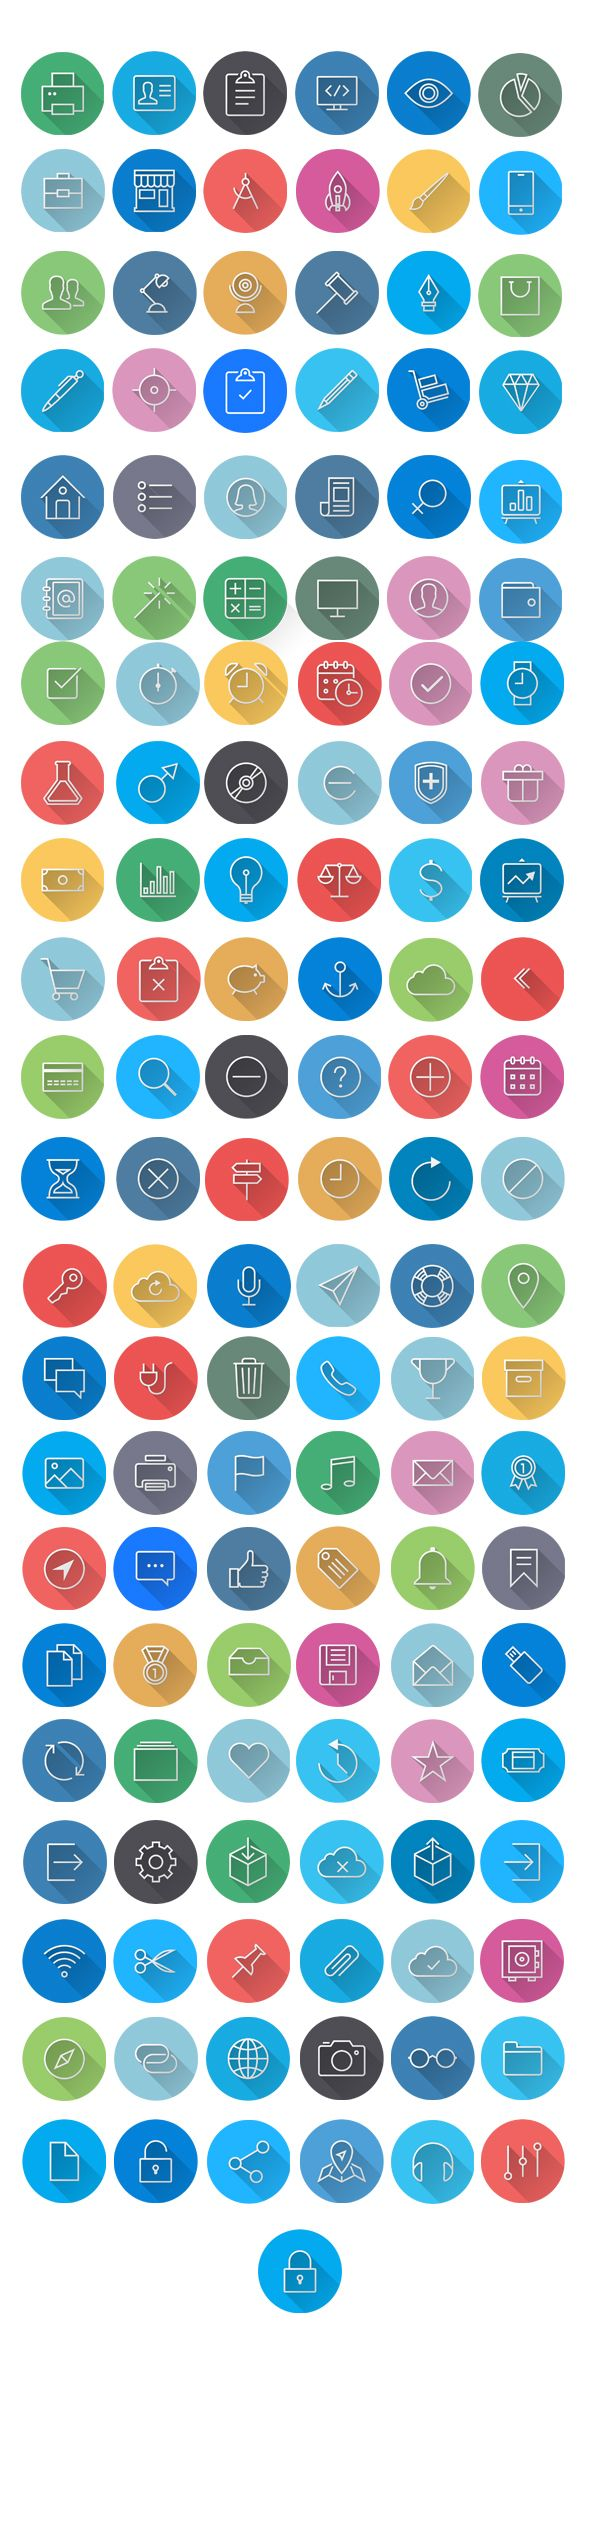 Flat Icons - GraphicRiver | DailyDesignMag.net by Cursor Creative House, via Behance Mobile marketing, app, app development, business, collaborations, colorful, communication, computer, consultancy, cross platform, development, flat icons, glyphs, graphics, icons, idea, interface, internet, line, long shadow, mac, media, modern, responsive, seo icons, social media, social network, stroke, touch, web